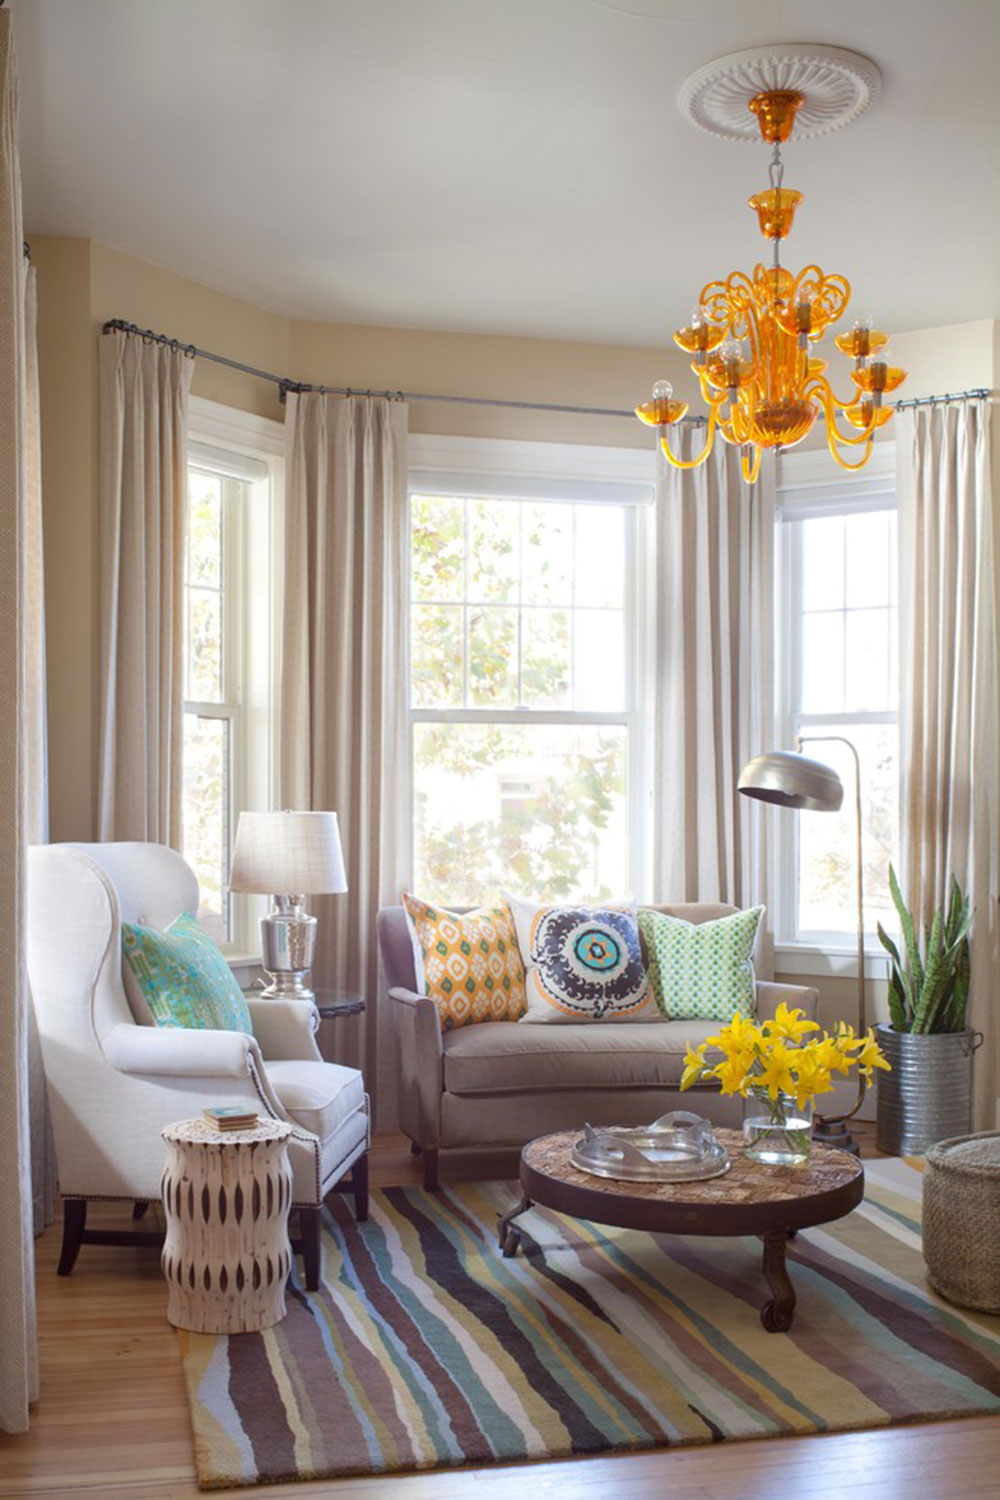 Homey Feelings With These Bay Window Decor 10